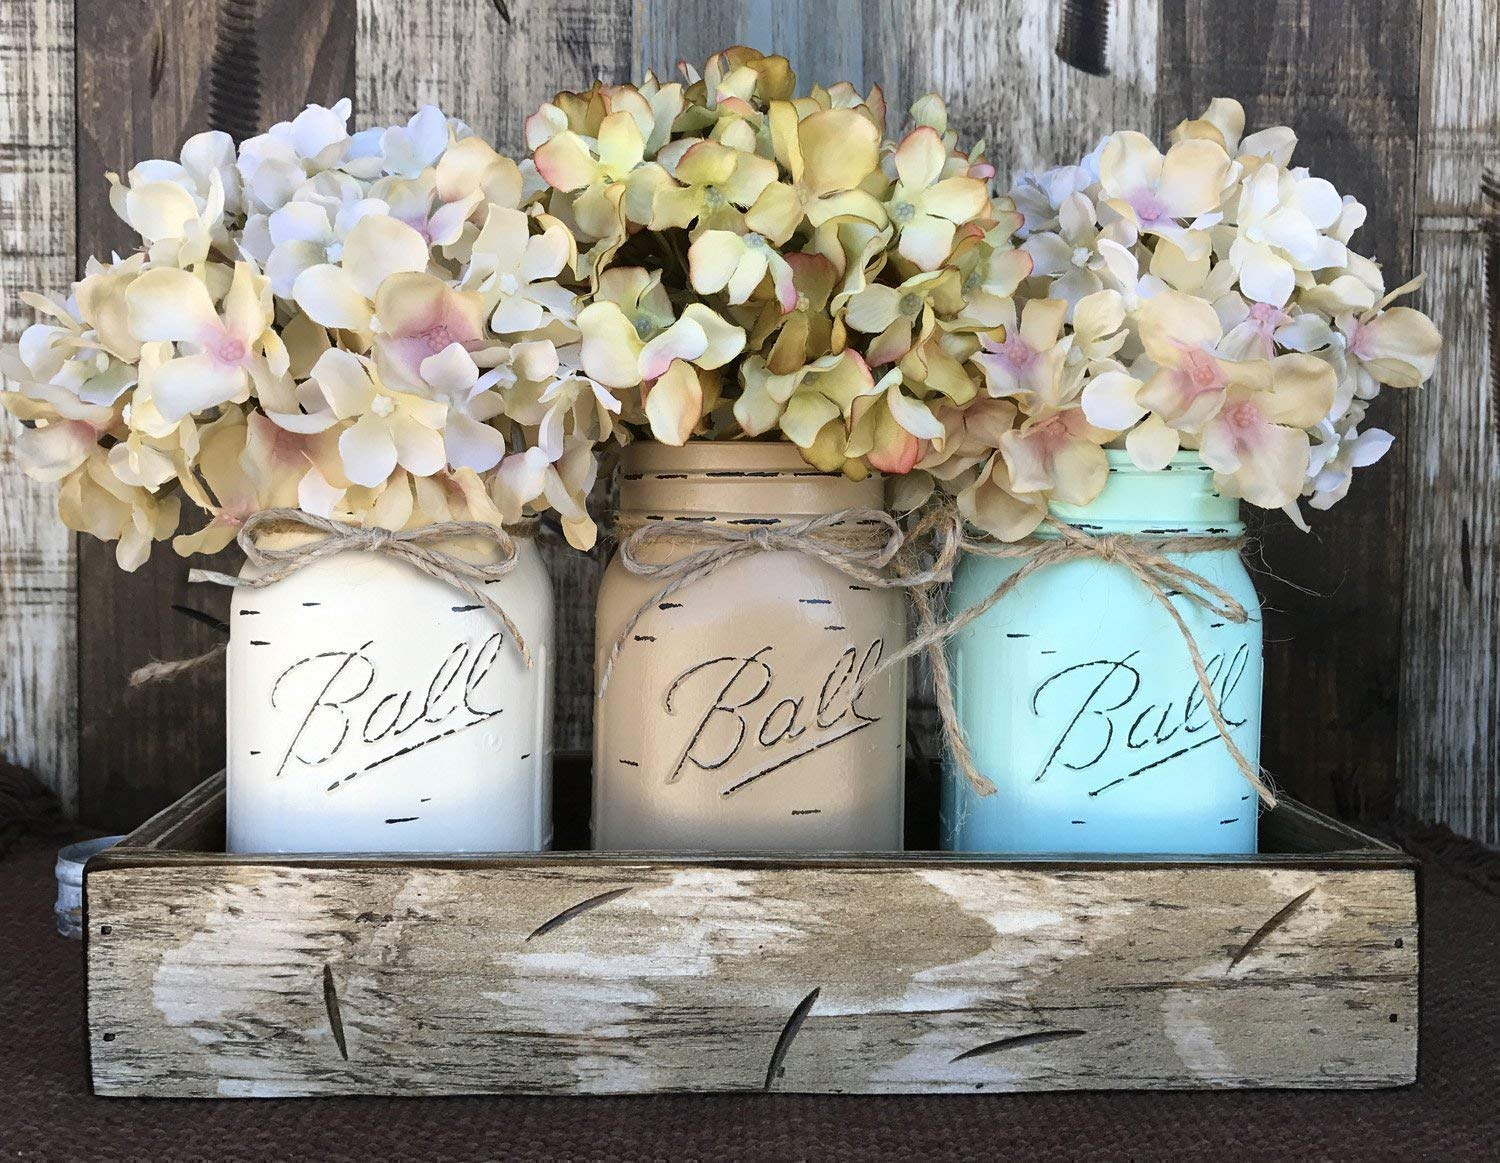 Mason Canning JARS U0026 Wood ANTIQUE WHITE Tray Spring Centerpiece With 3 Ball  Pint Jar  Kitchen Table Decor Distressed Rustic (Flowers Optional)  CREAM,  ...